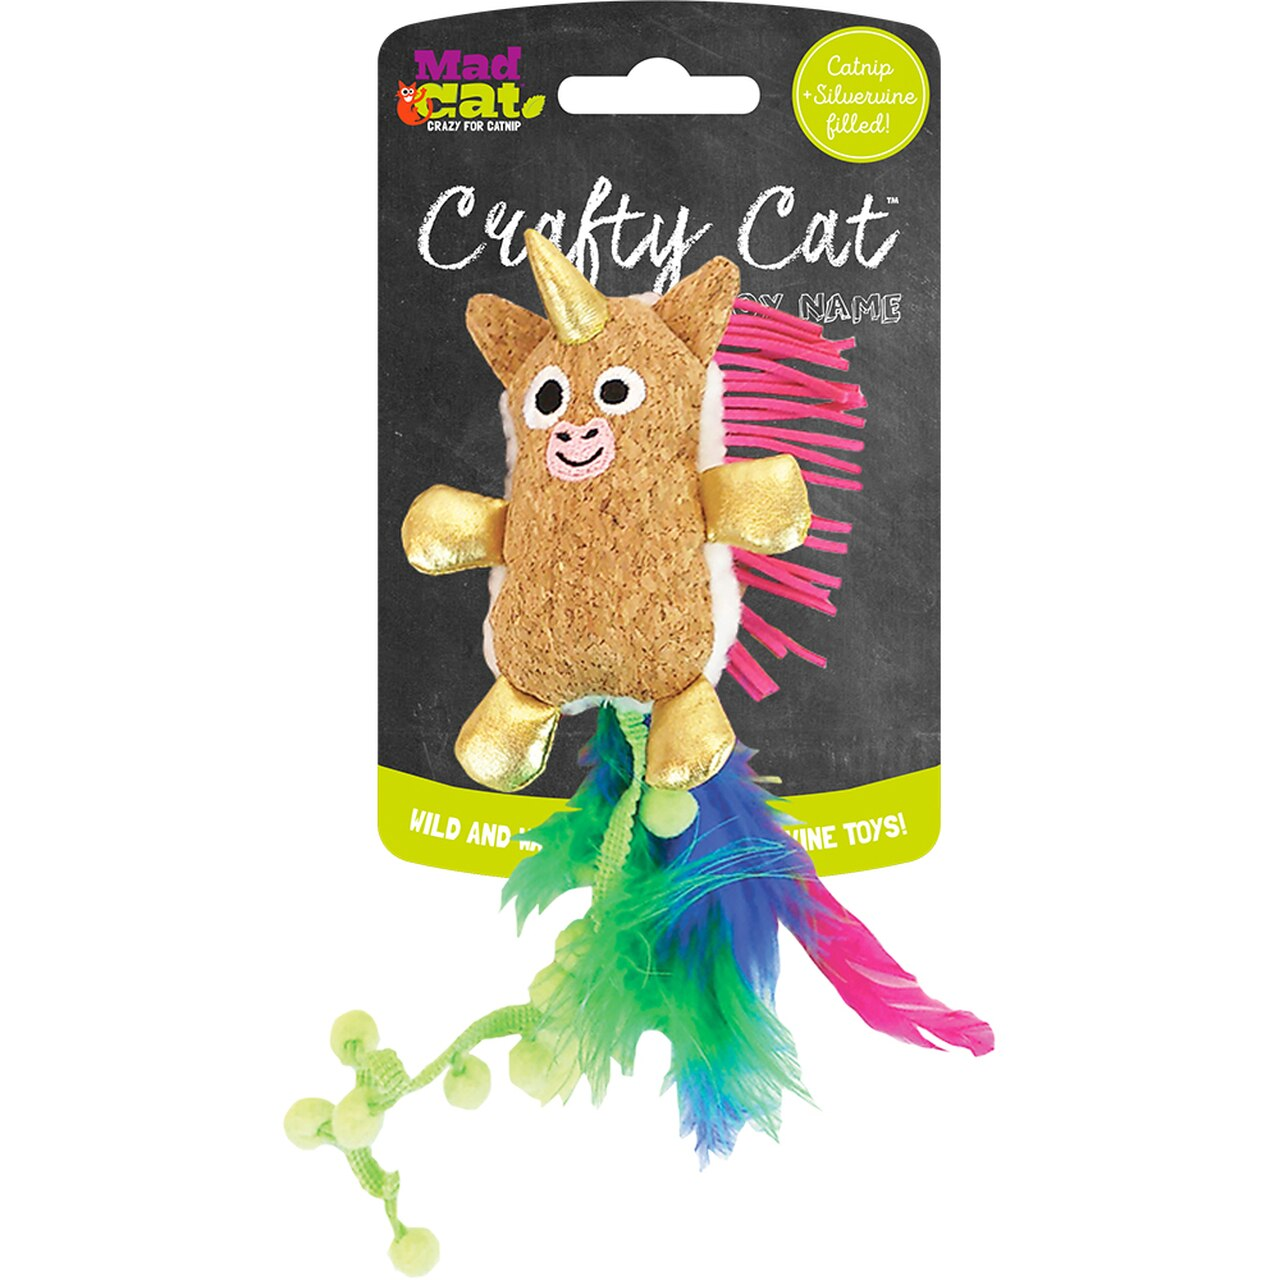 Mad Cat Crafty Cat Prancing Pom Unicorn Cat Toy